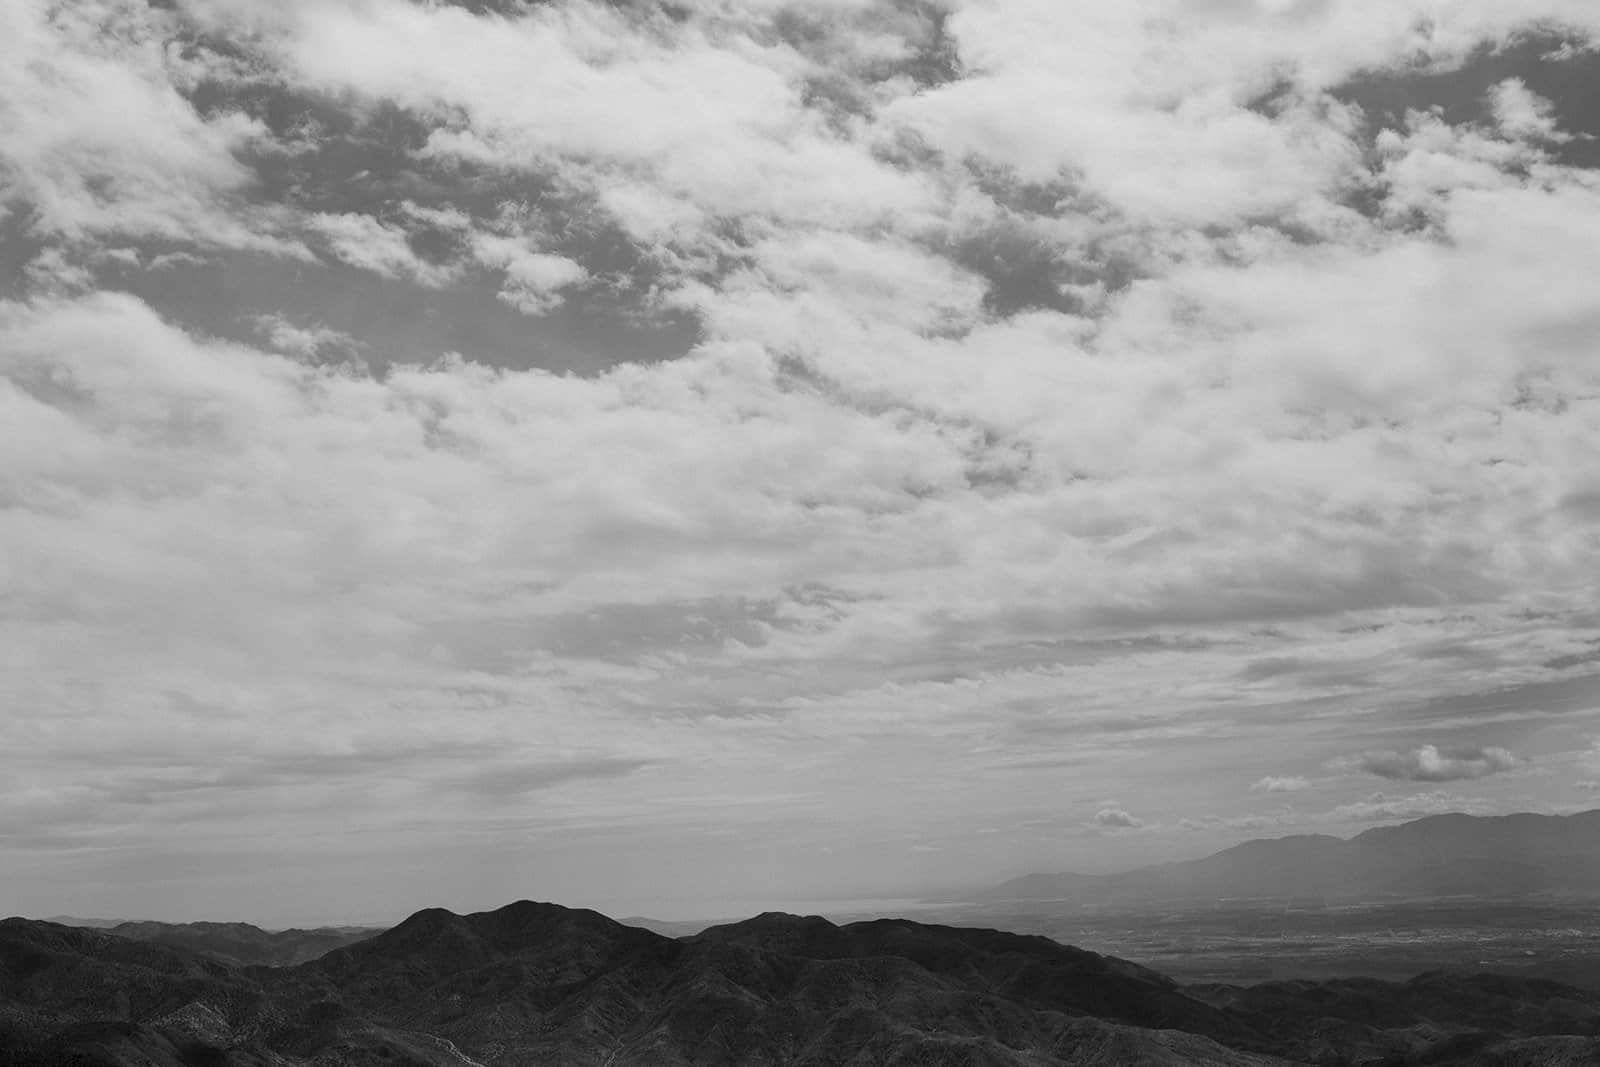 landscape from keys view overlook in Joshua Tree National Park